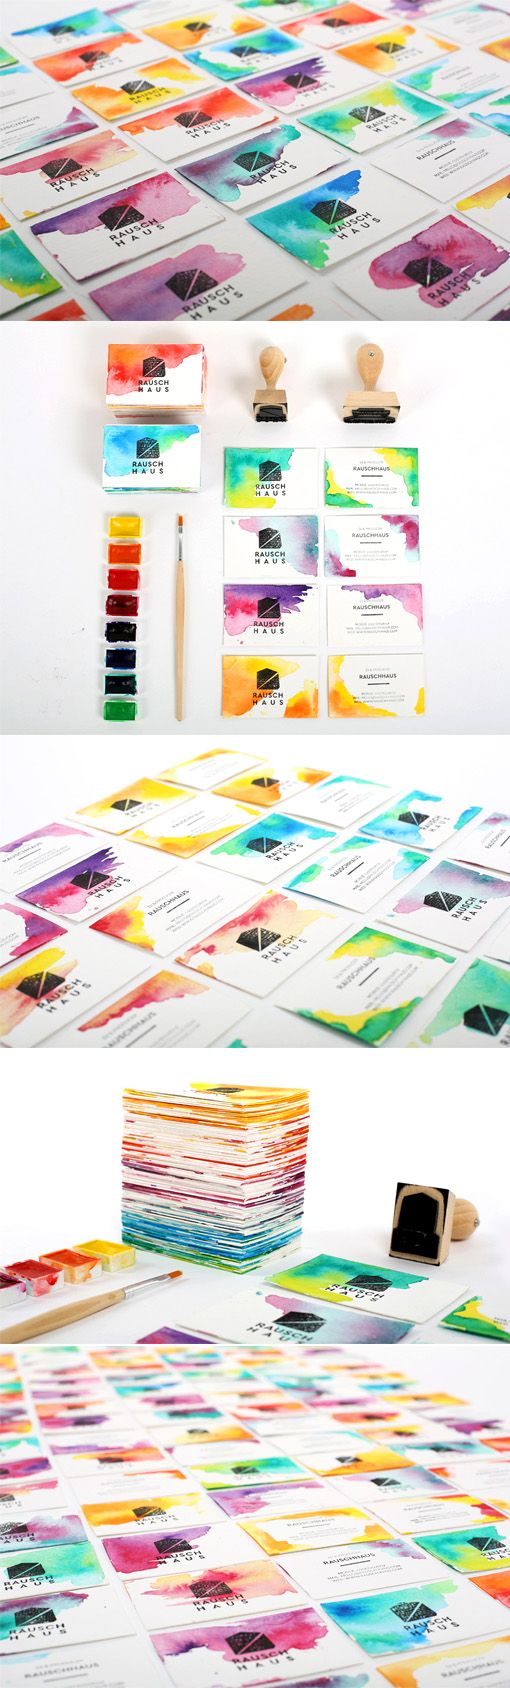 Best 25 business cards ideas on pinterest business card design best 25 business cards ideas on pinterest business card design visit cards and visiting card design online magicingreecefo Images